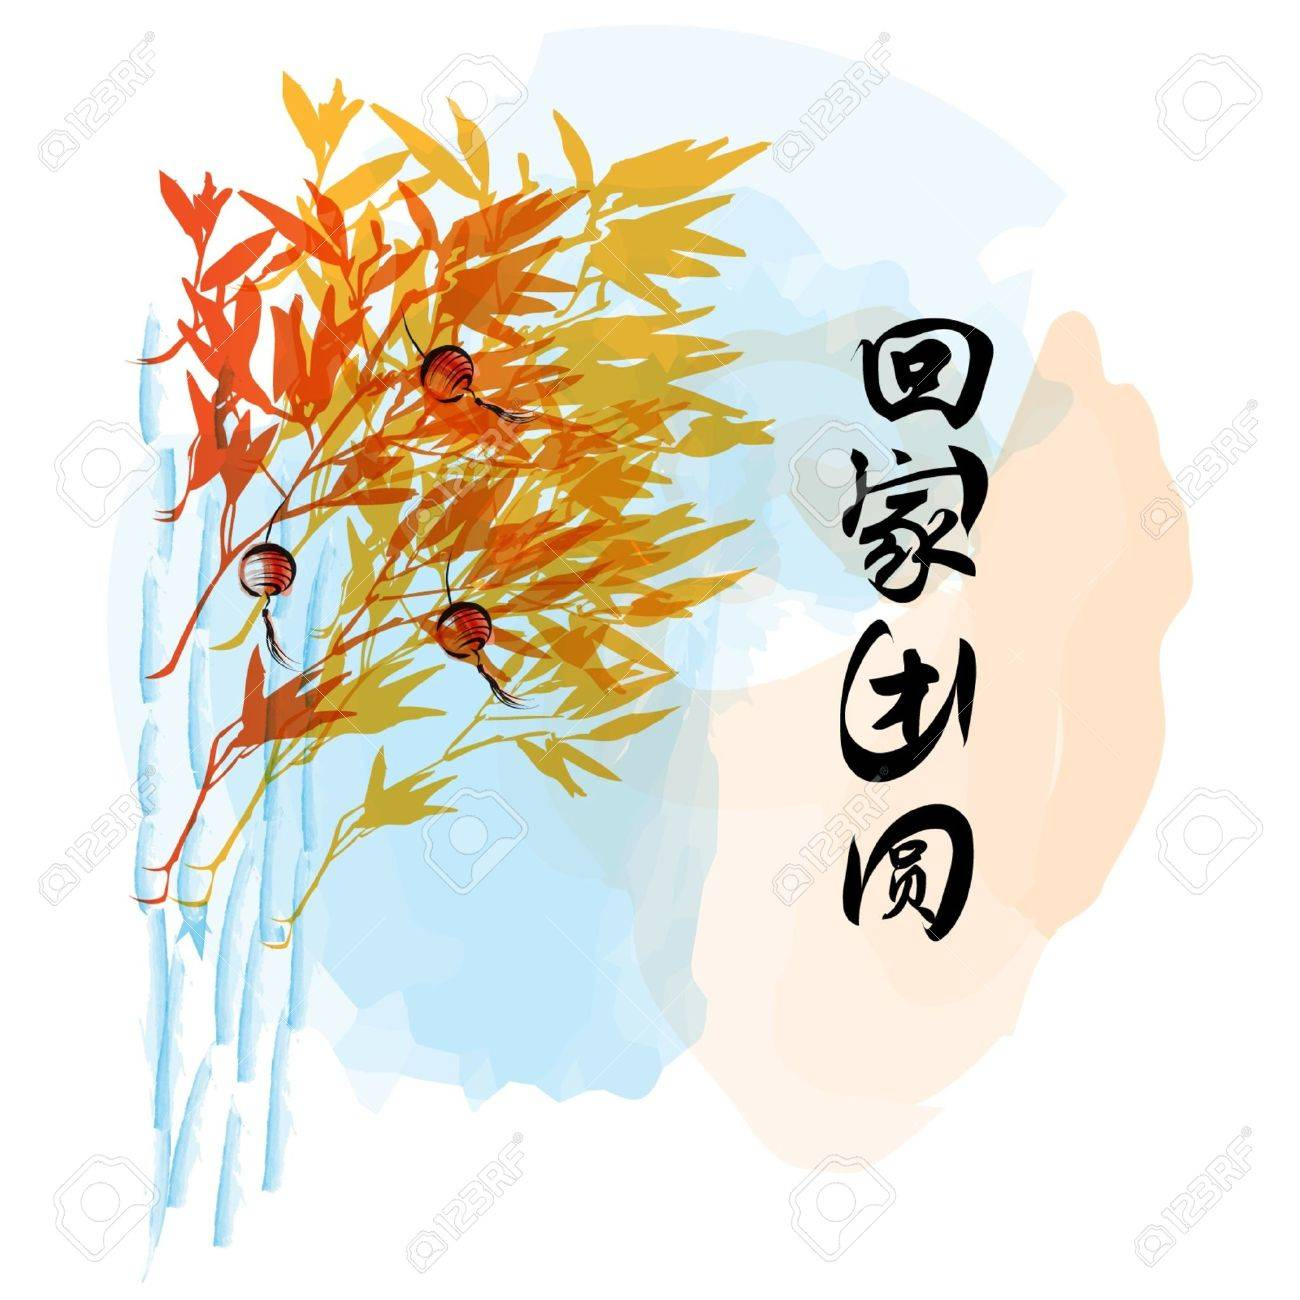 Gathering on Chinese New Year Stock Vector - 17451414